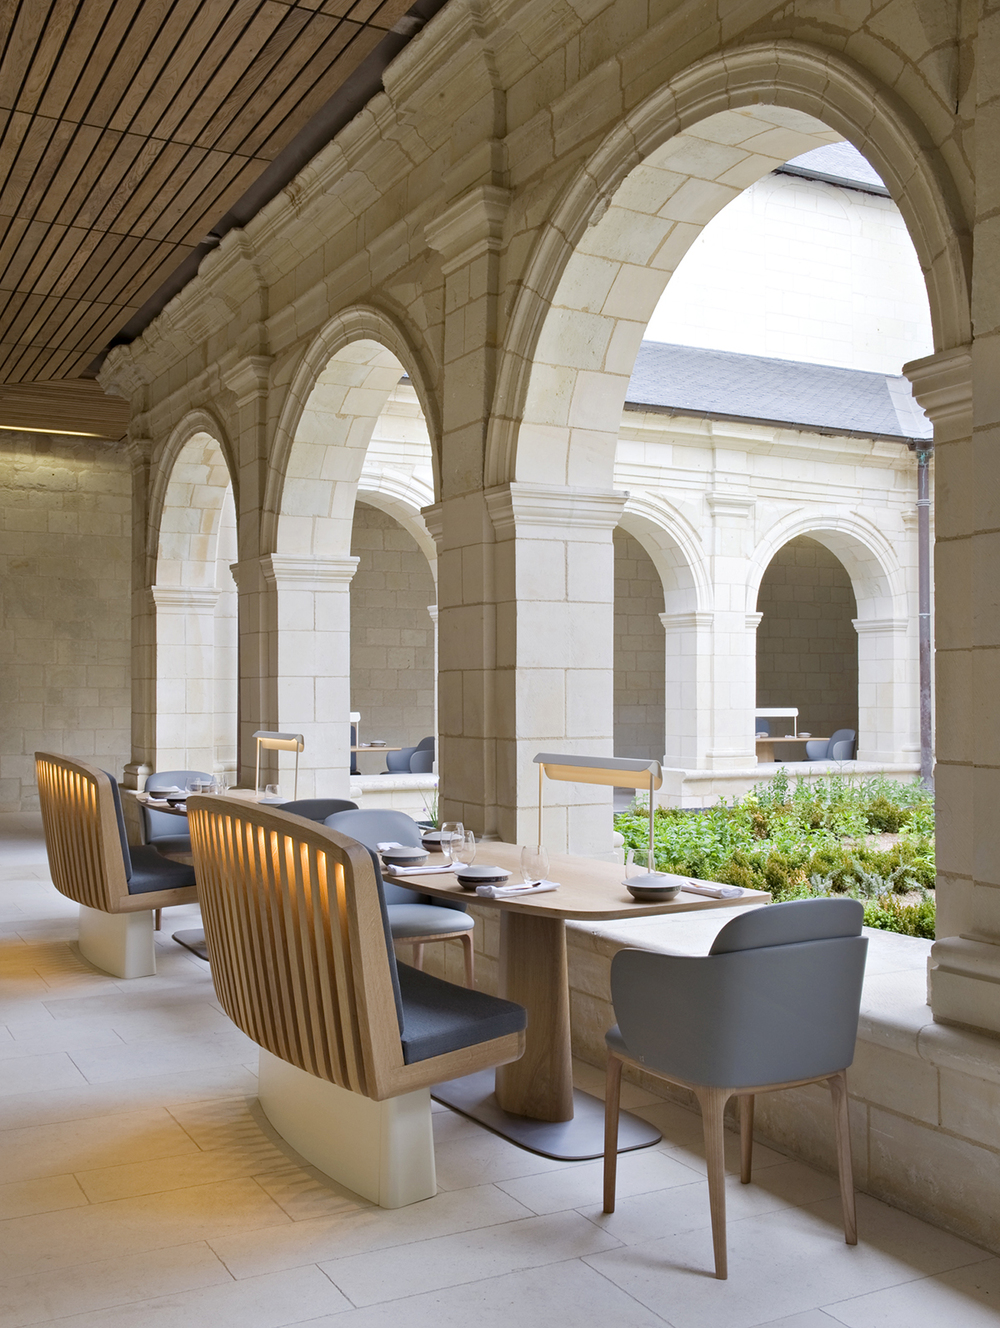 Fontevraud h tel patrick jouin reinvents the abbey knstrct for Hotel design loire